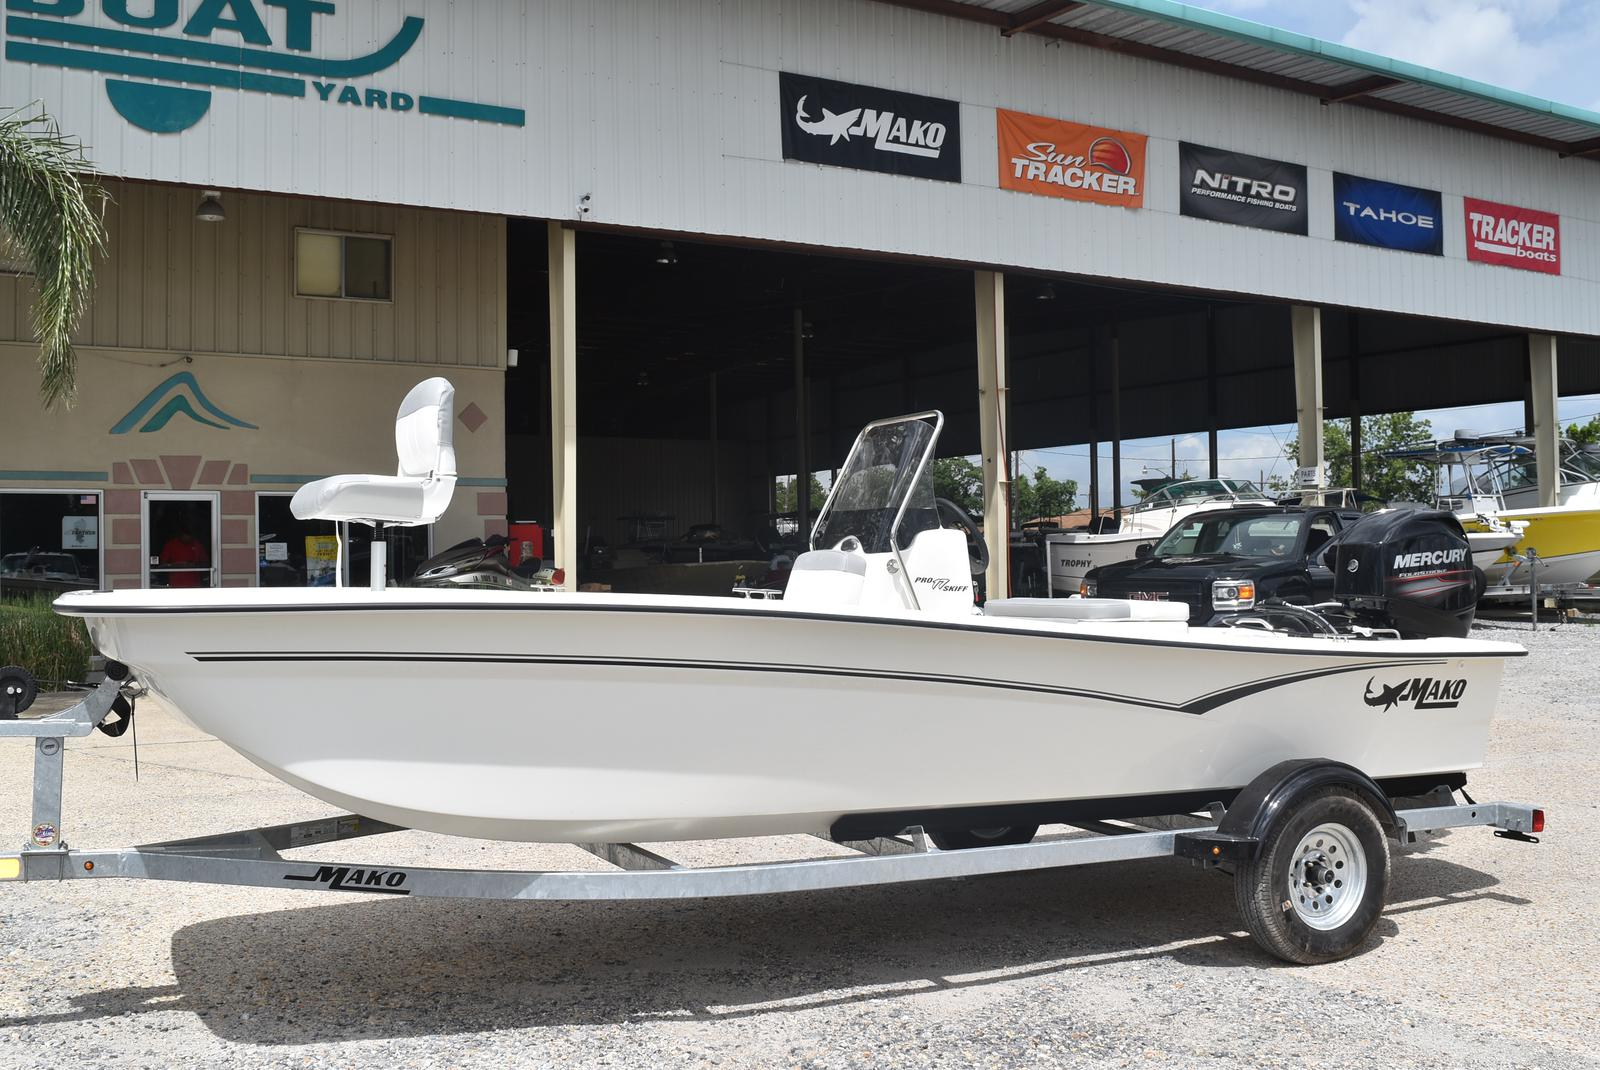 2020 Mako boat for sale, model of the boat is Pro Skiff 17, 75 ELPT & Image # 142 of 702